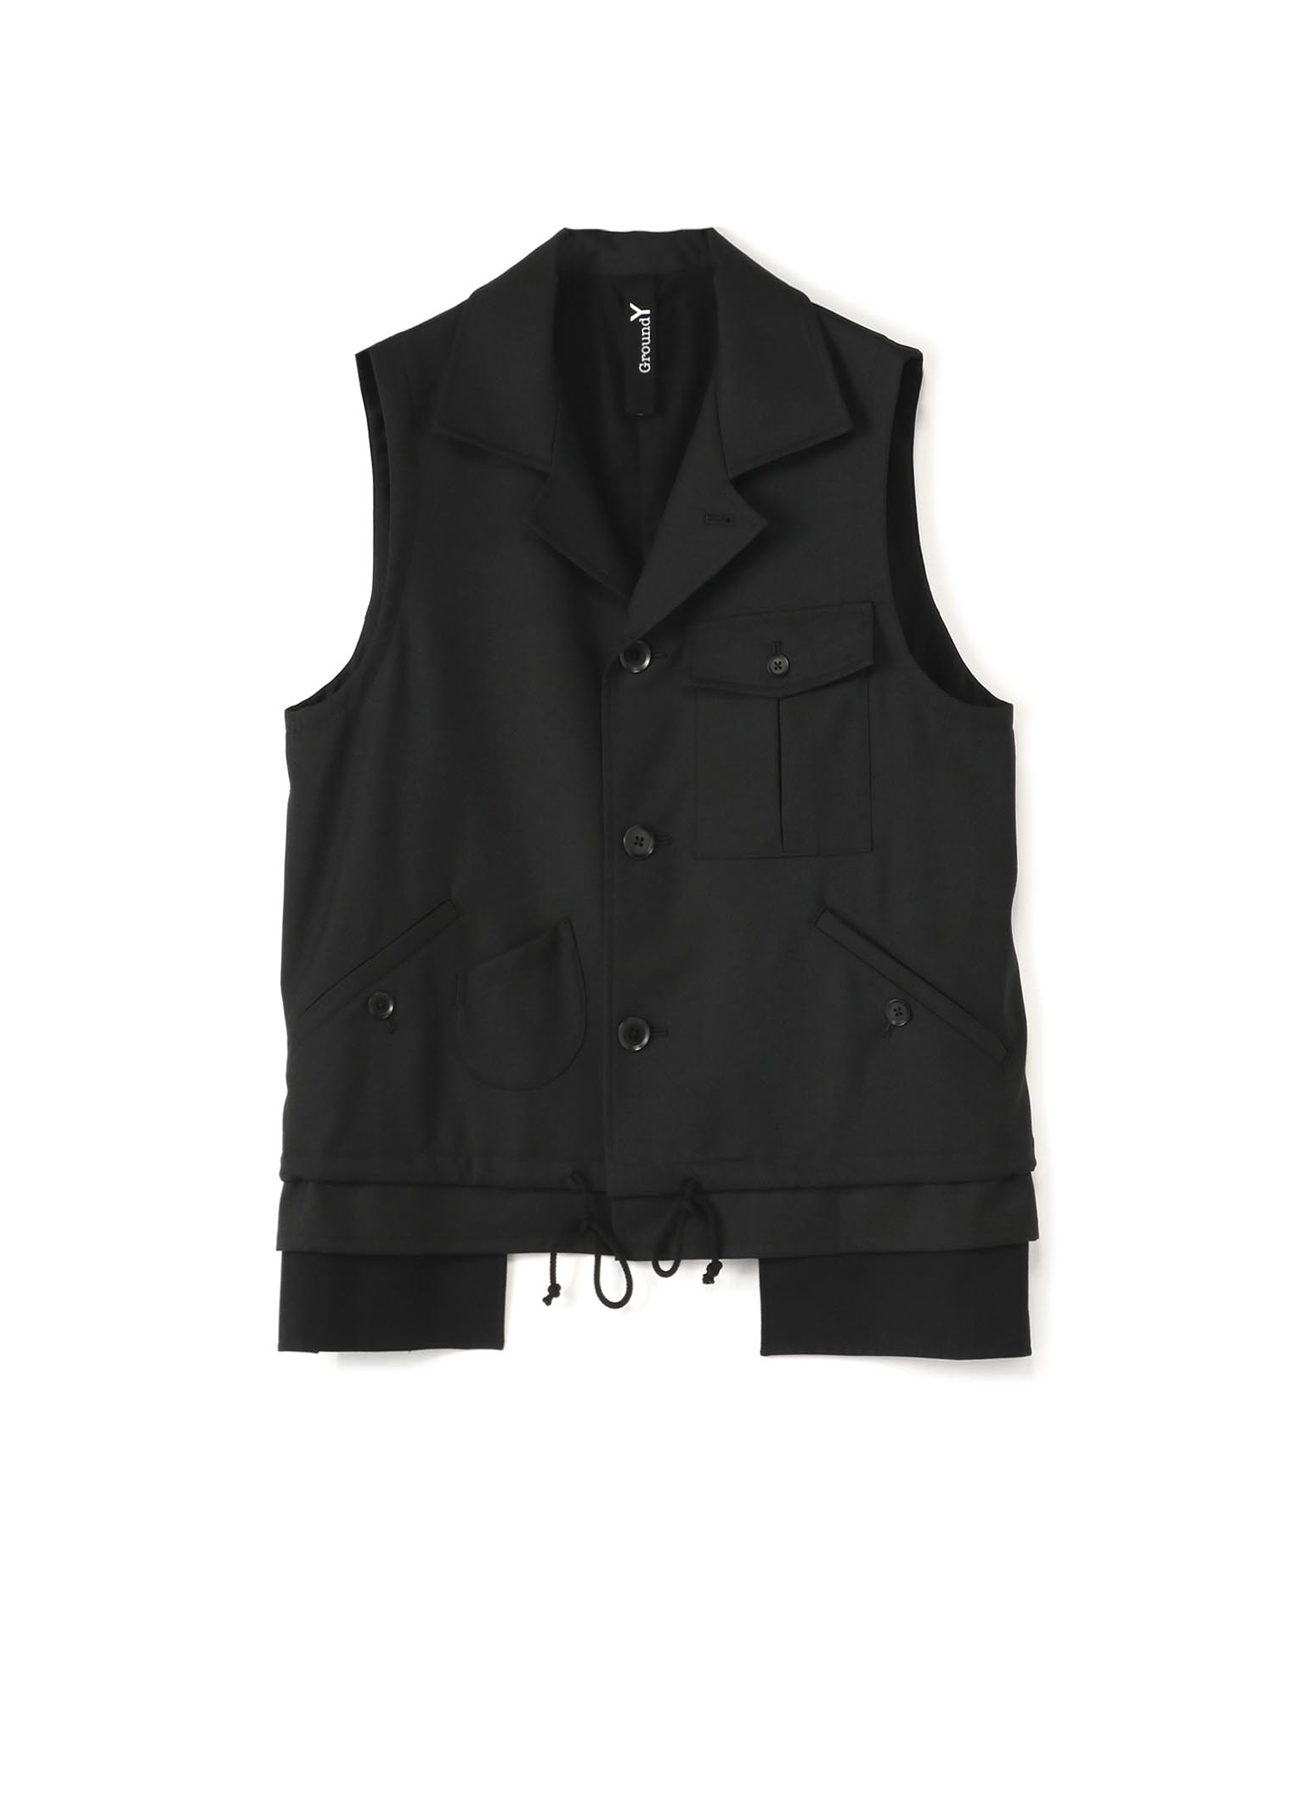 T/W  Gabardine Sleeveless Work Jacket